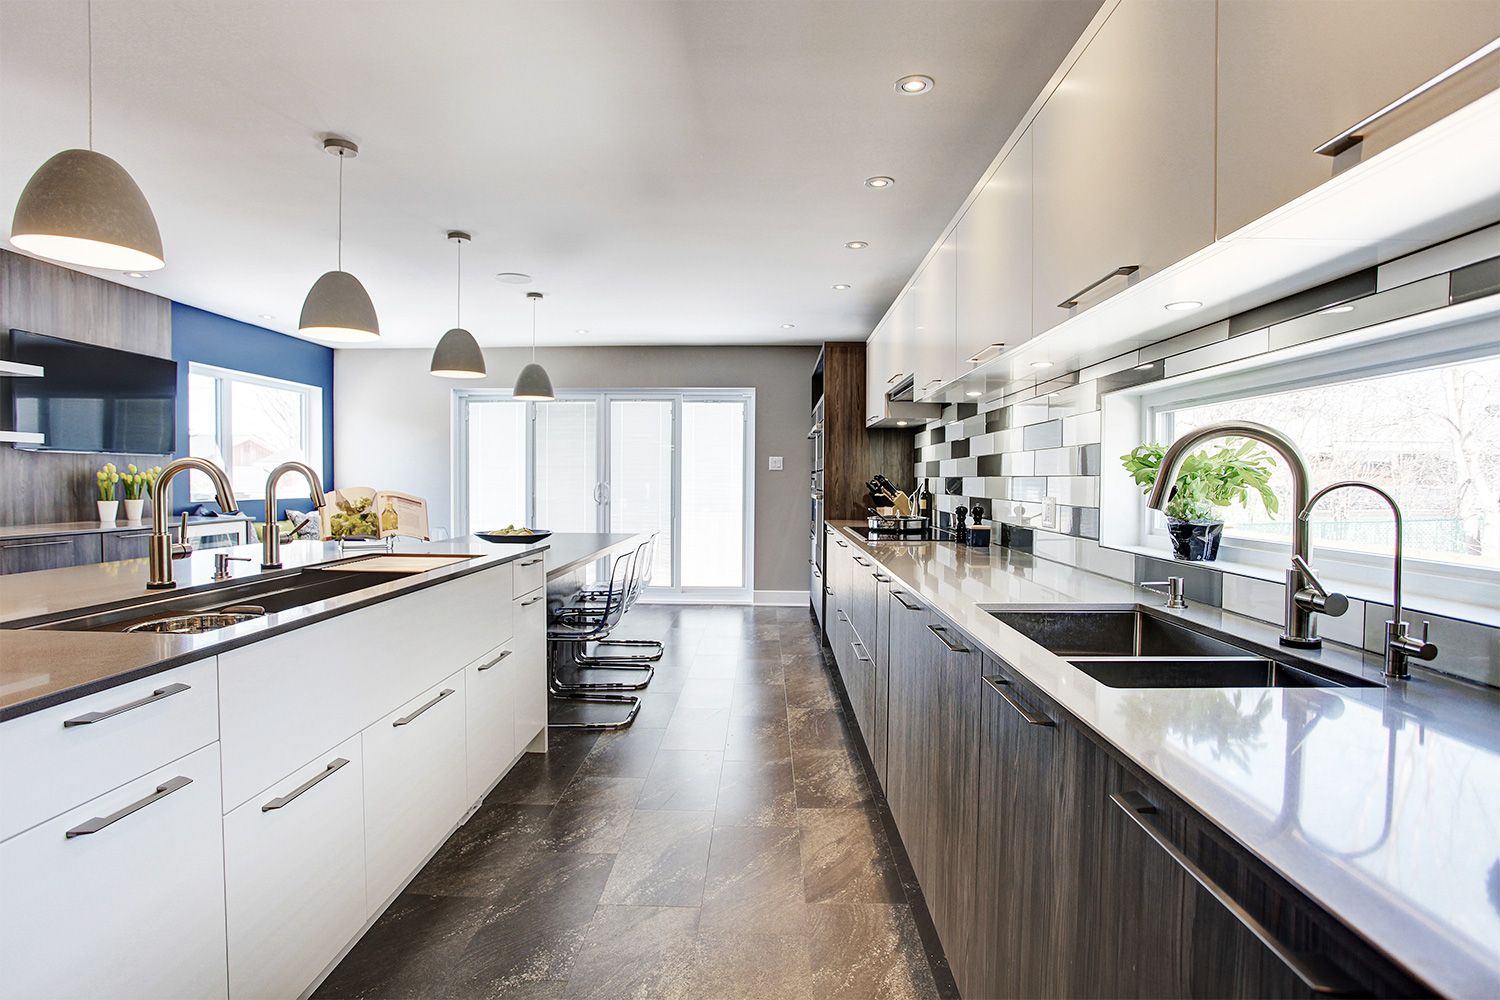 A Spacious Contemporary Kitchen Equipped With Two Sinks ... encequiconcerne Vima Salon De Jardin